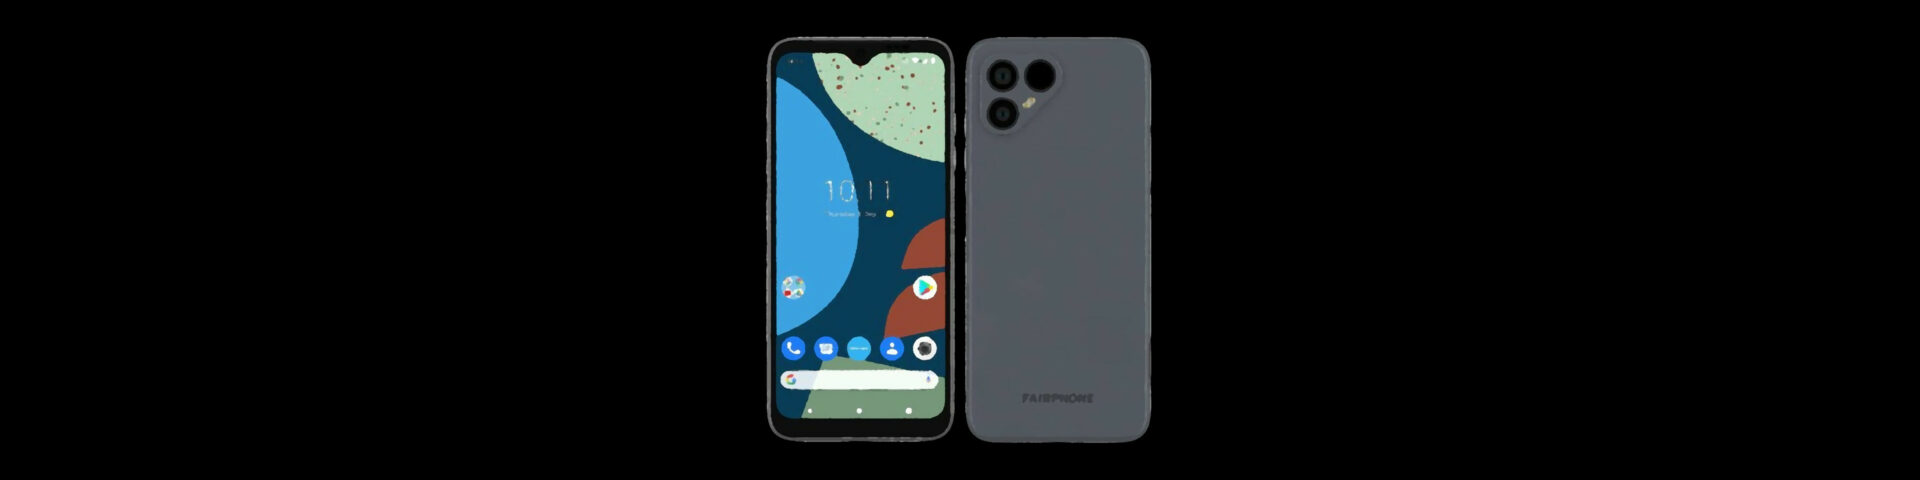 Fairphone 4 5G. A modern ethical and sustainable smartphone is on its way